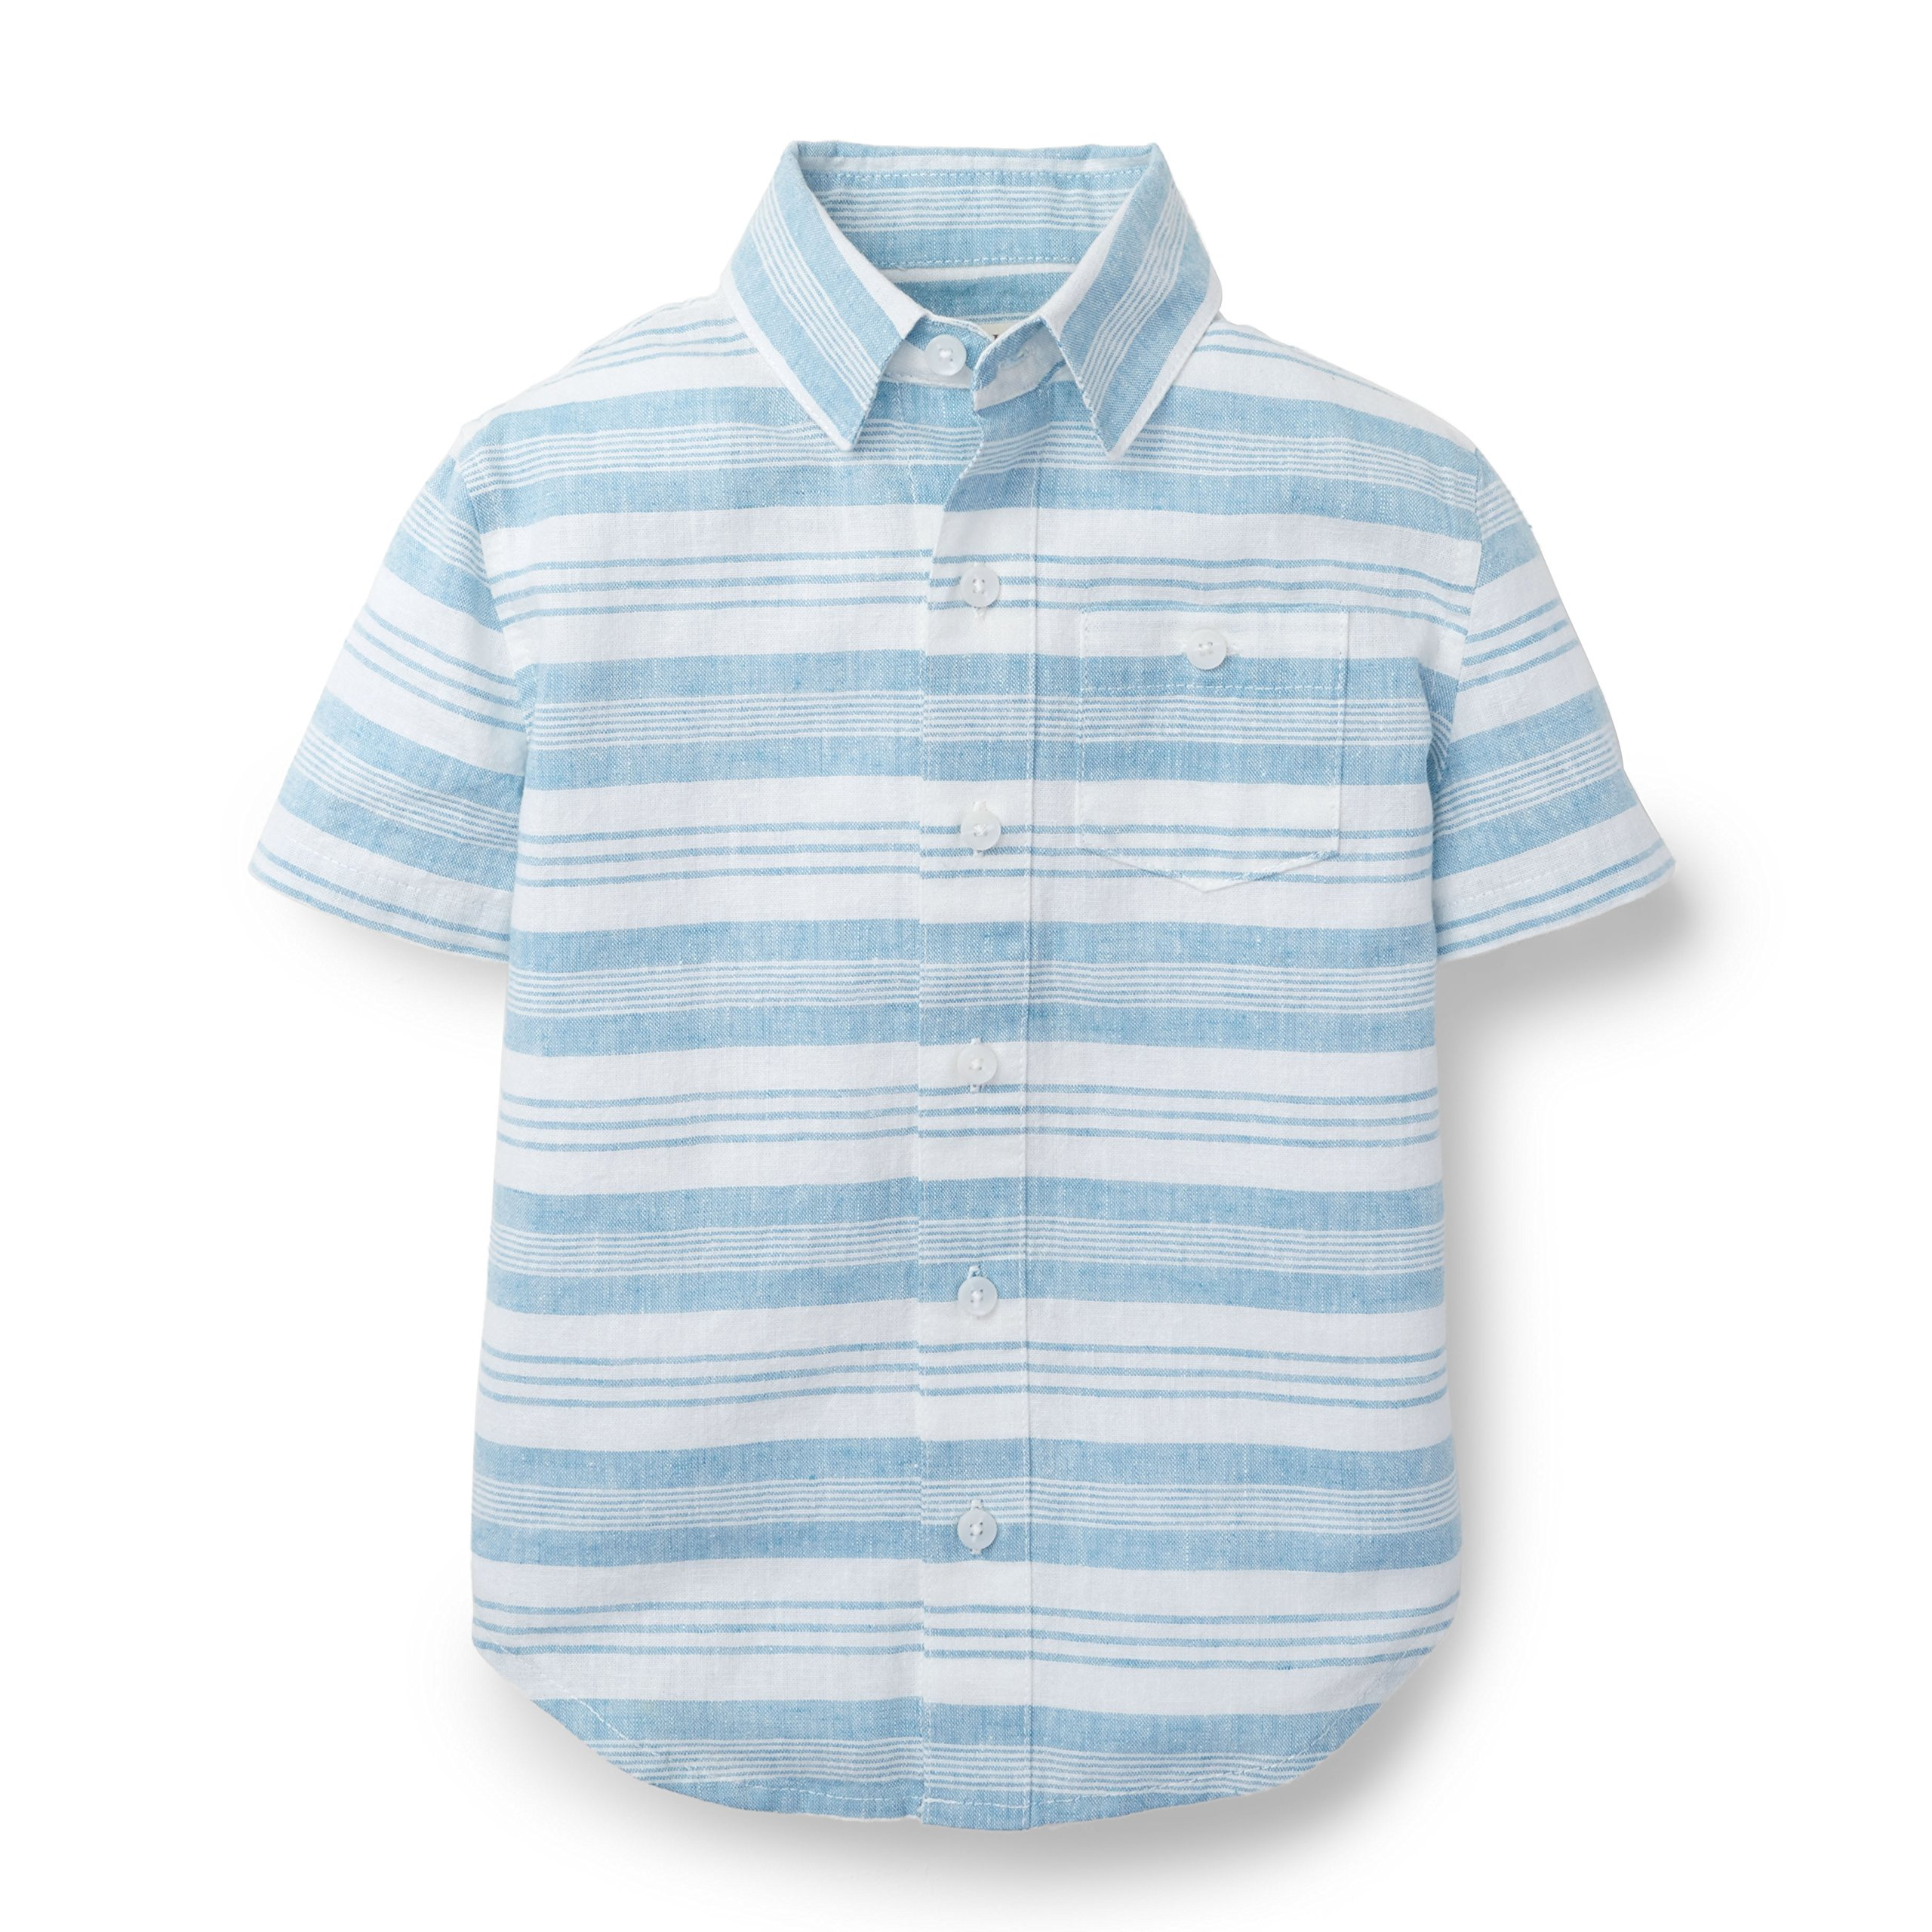 Hope & Henry Boys Linen Striped Short Sleeve Shirt Made with Organic Cotton